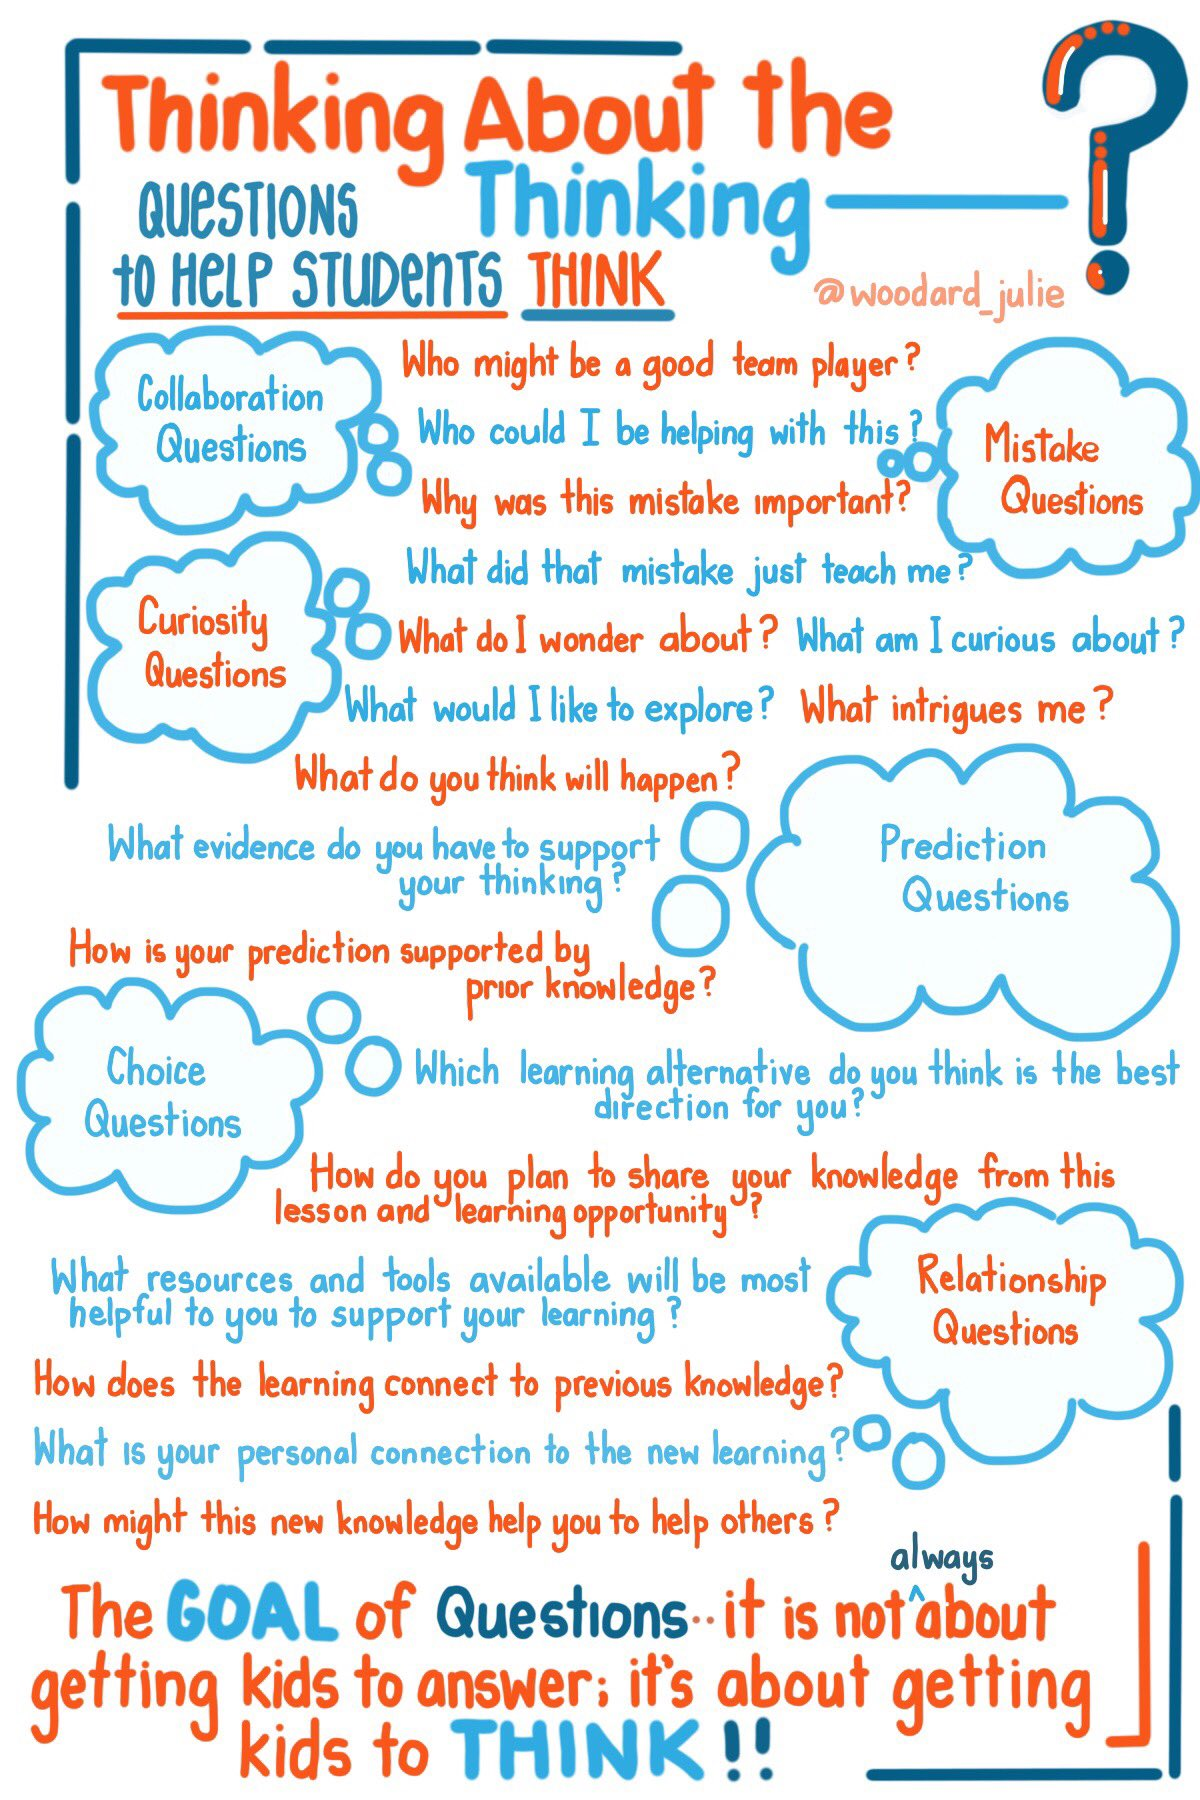 Questions are to get your students to think -- these ideas from @woodard_julie might jump start the conversation #sketchnote #edchat #teaching https://t.co/Ya6Z2AbB0j